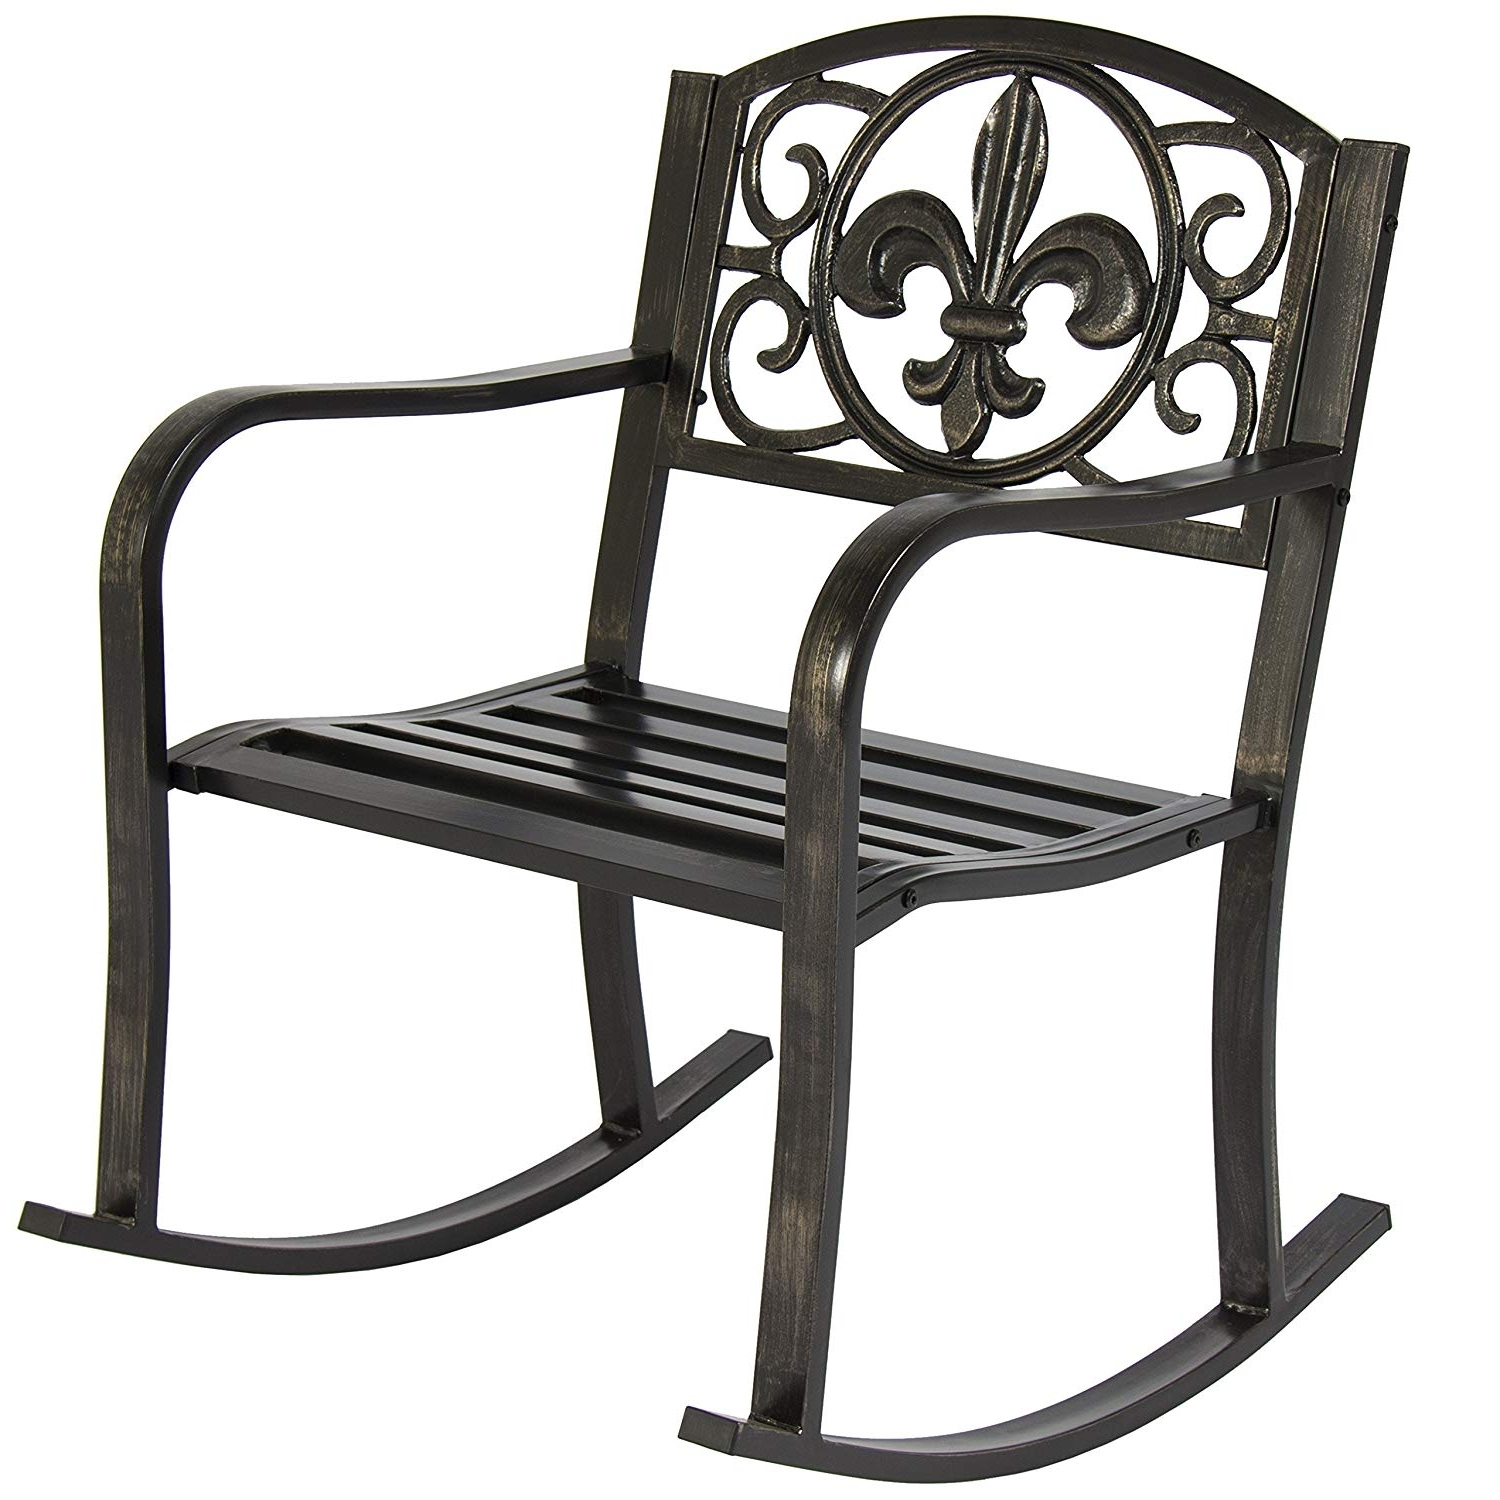 Most Current Patio Rocking Chairs Pertaining To Amazon : Best Choice Products Metal Rocking Chair Seat For Patio (View 7 of 15)